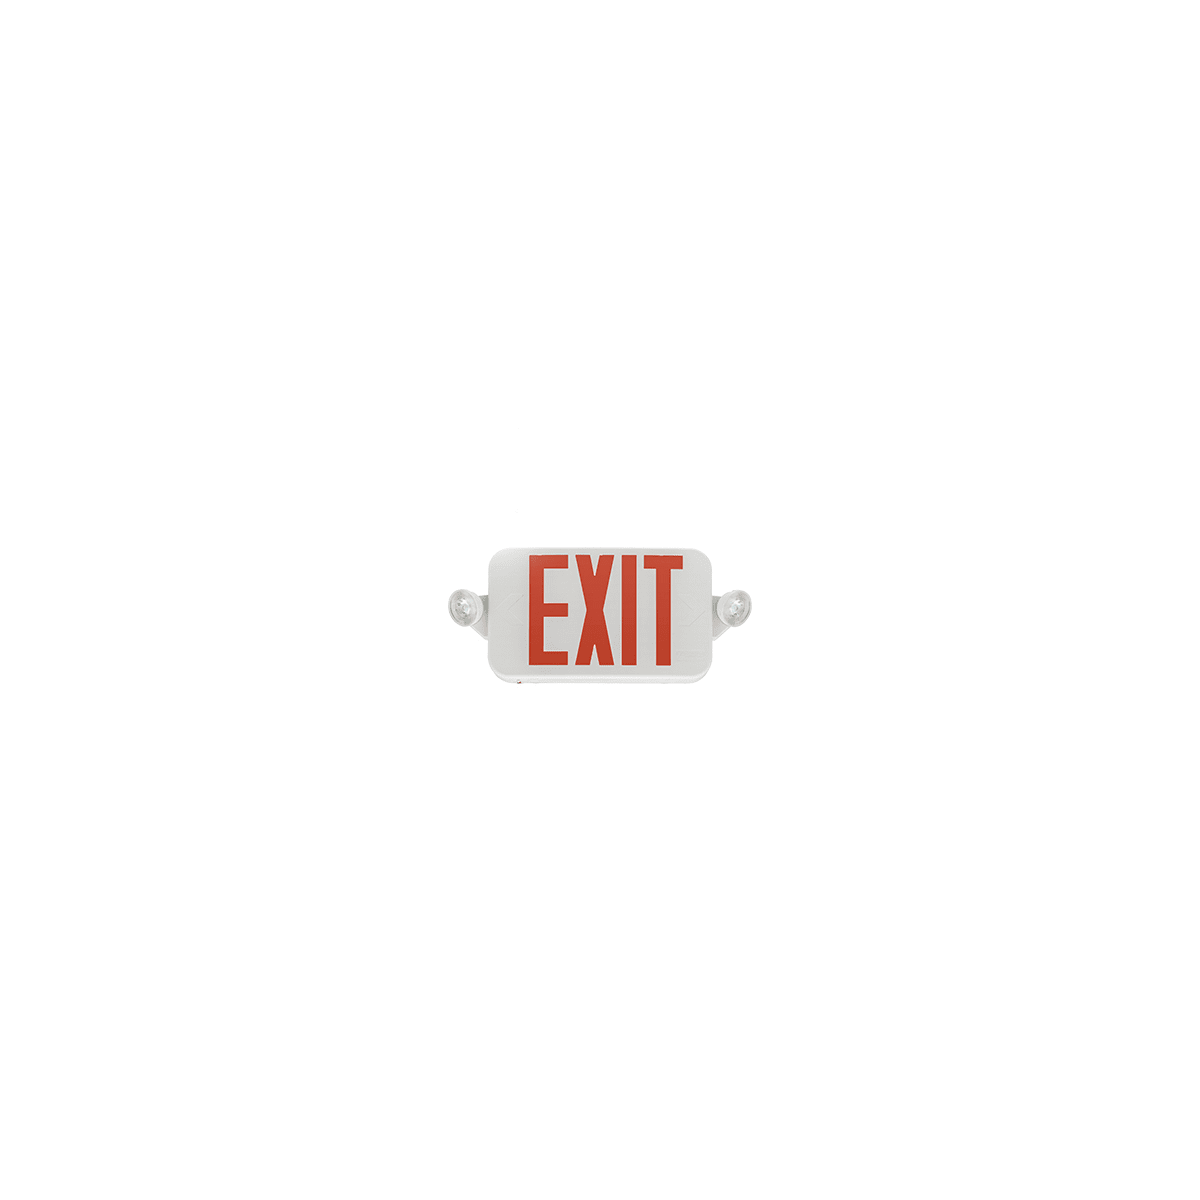 Lithonia Lighting Ecc G M6 White Green 16 Wide Led Ceiling Or Wall Mount Exit Sign With Emergency Lights From The Contractor Select Collection Lightingdirect Com